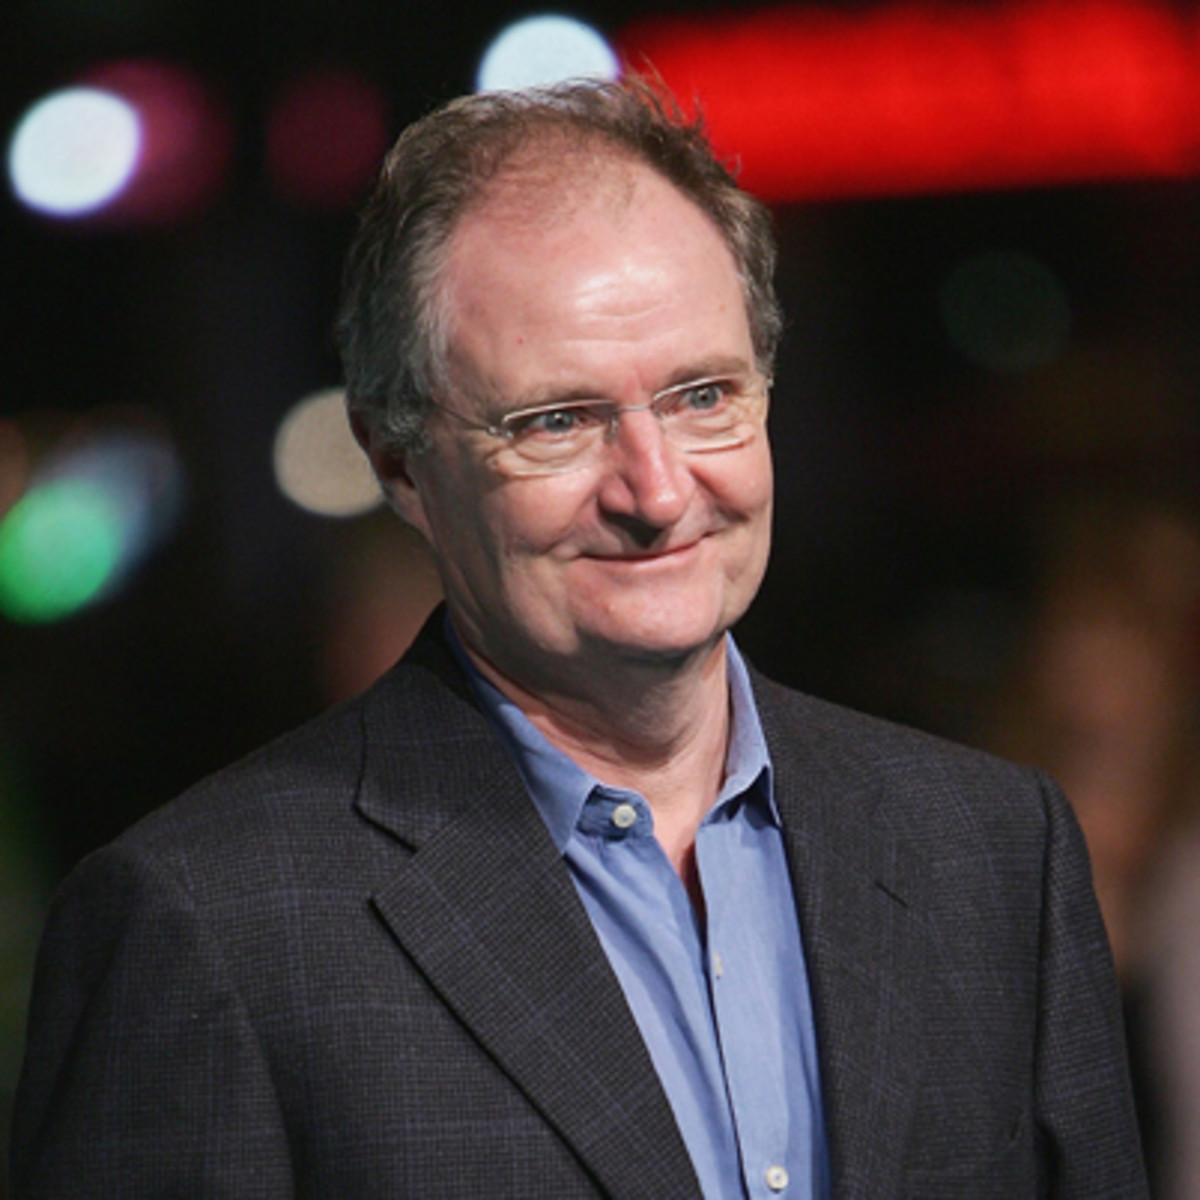 Jim Broadbent (born 1949)